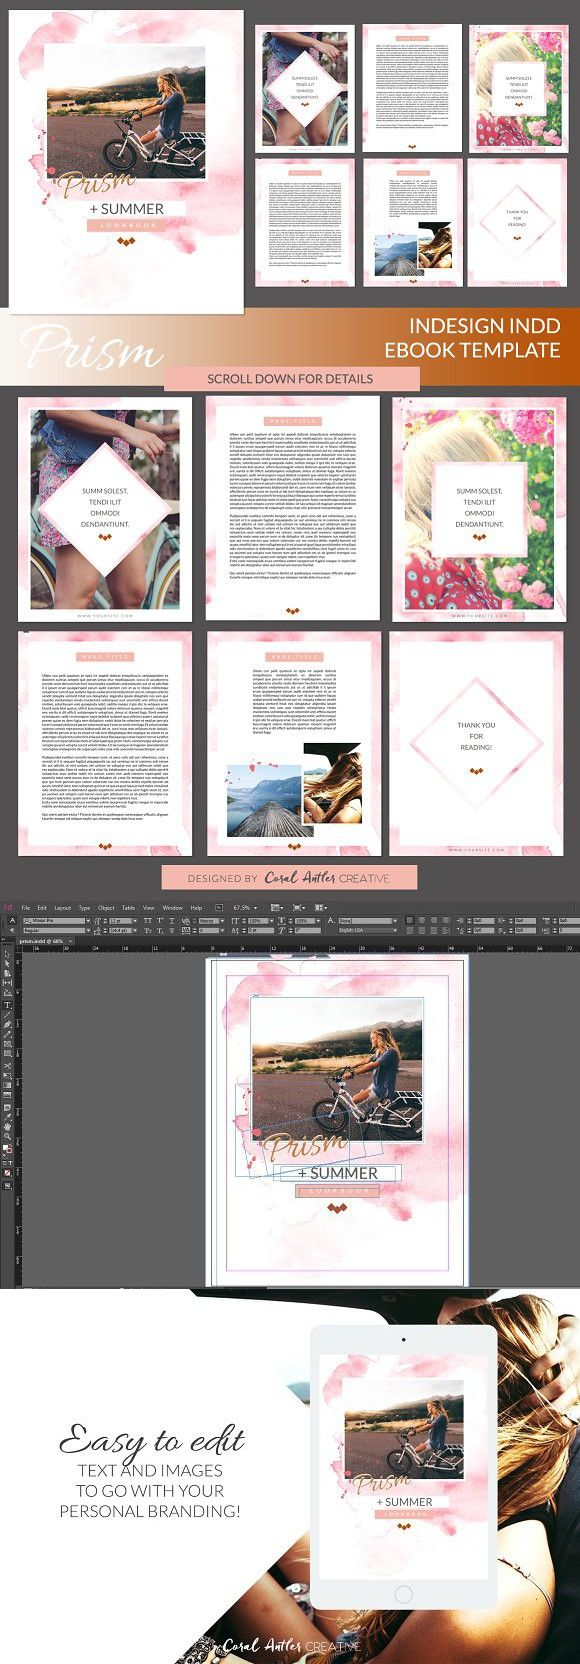 Prism InDesign Ebook Template. Creative Business Card Templates ...